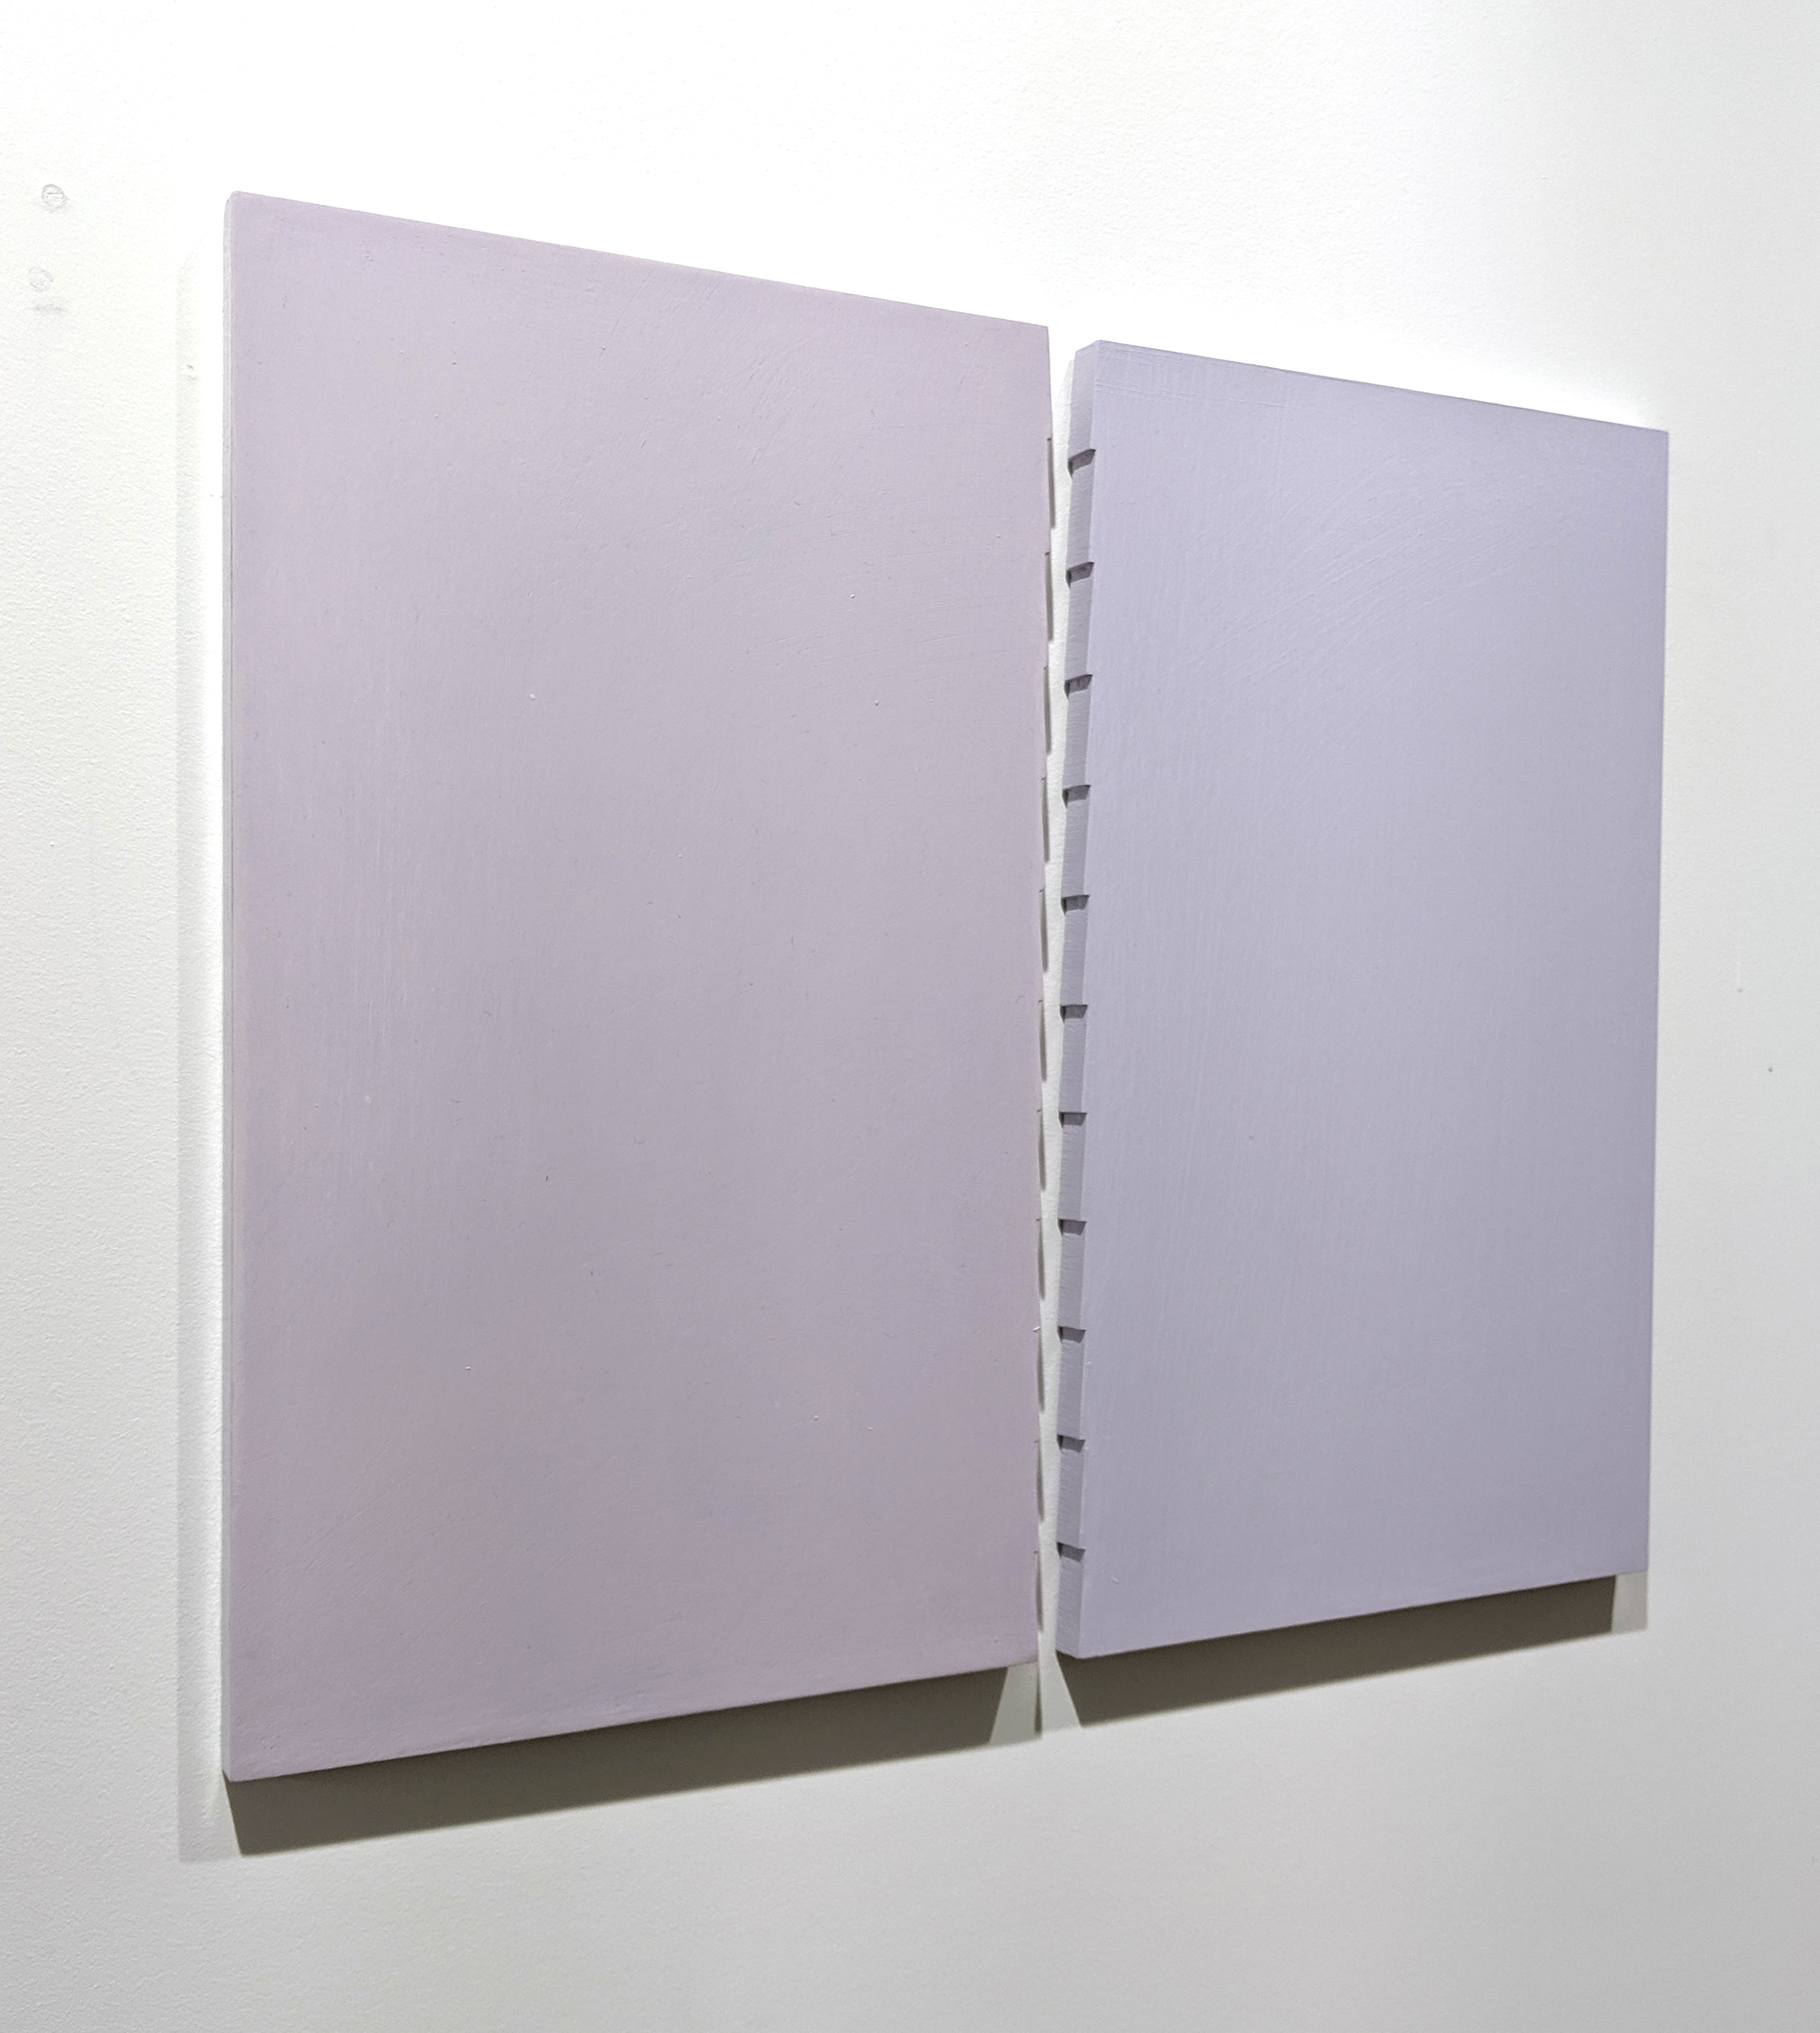 Acrylic on panel 14.63 x 14.63 inches, each panel (37.1 x 44.5 cm, each panel) - Marc Straus Gallery